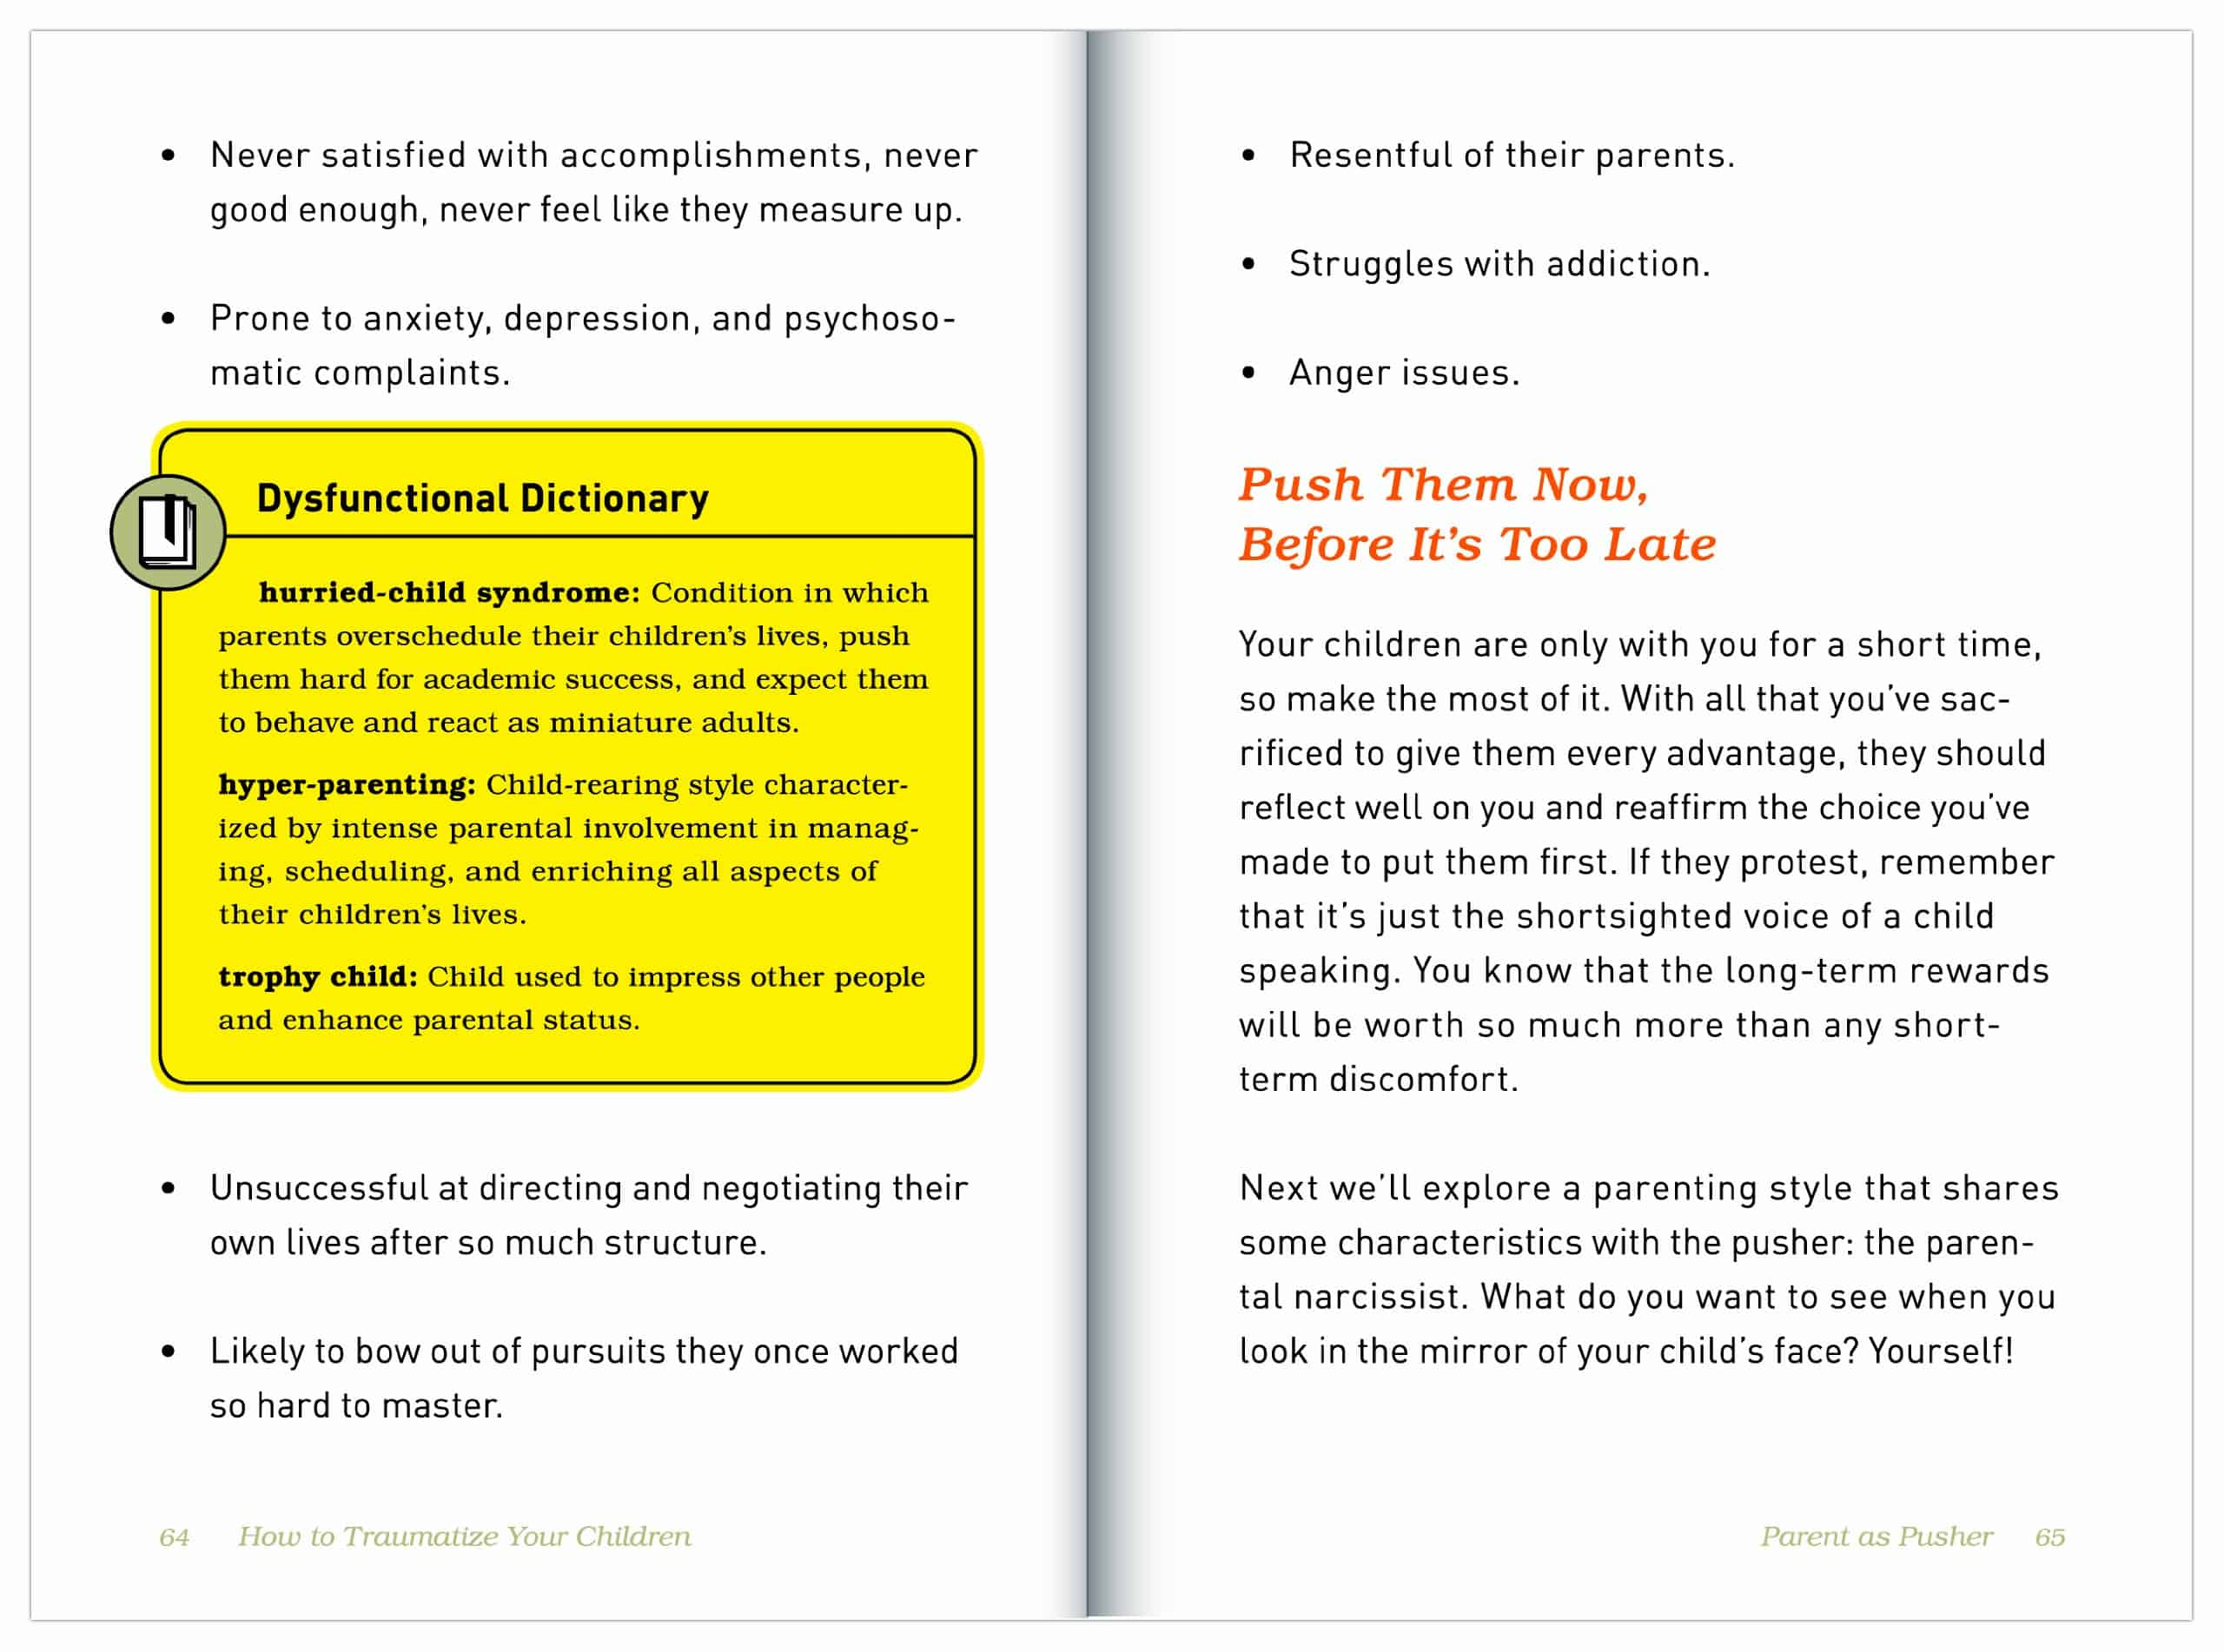 How to Traumatize Your Children 7 Proven Methods Page Dysfunctional Dictionary